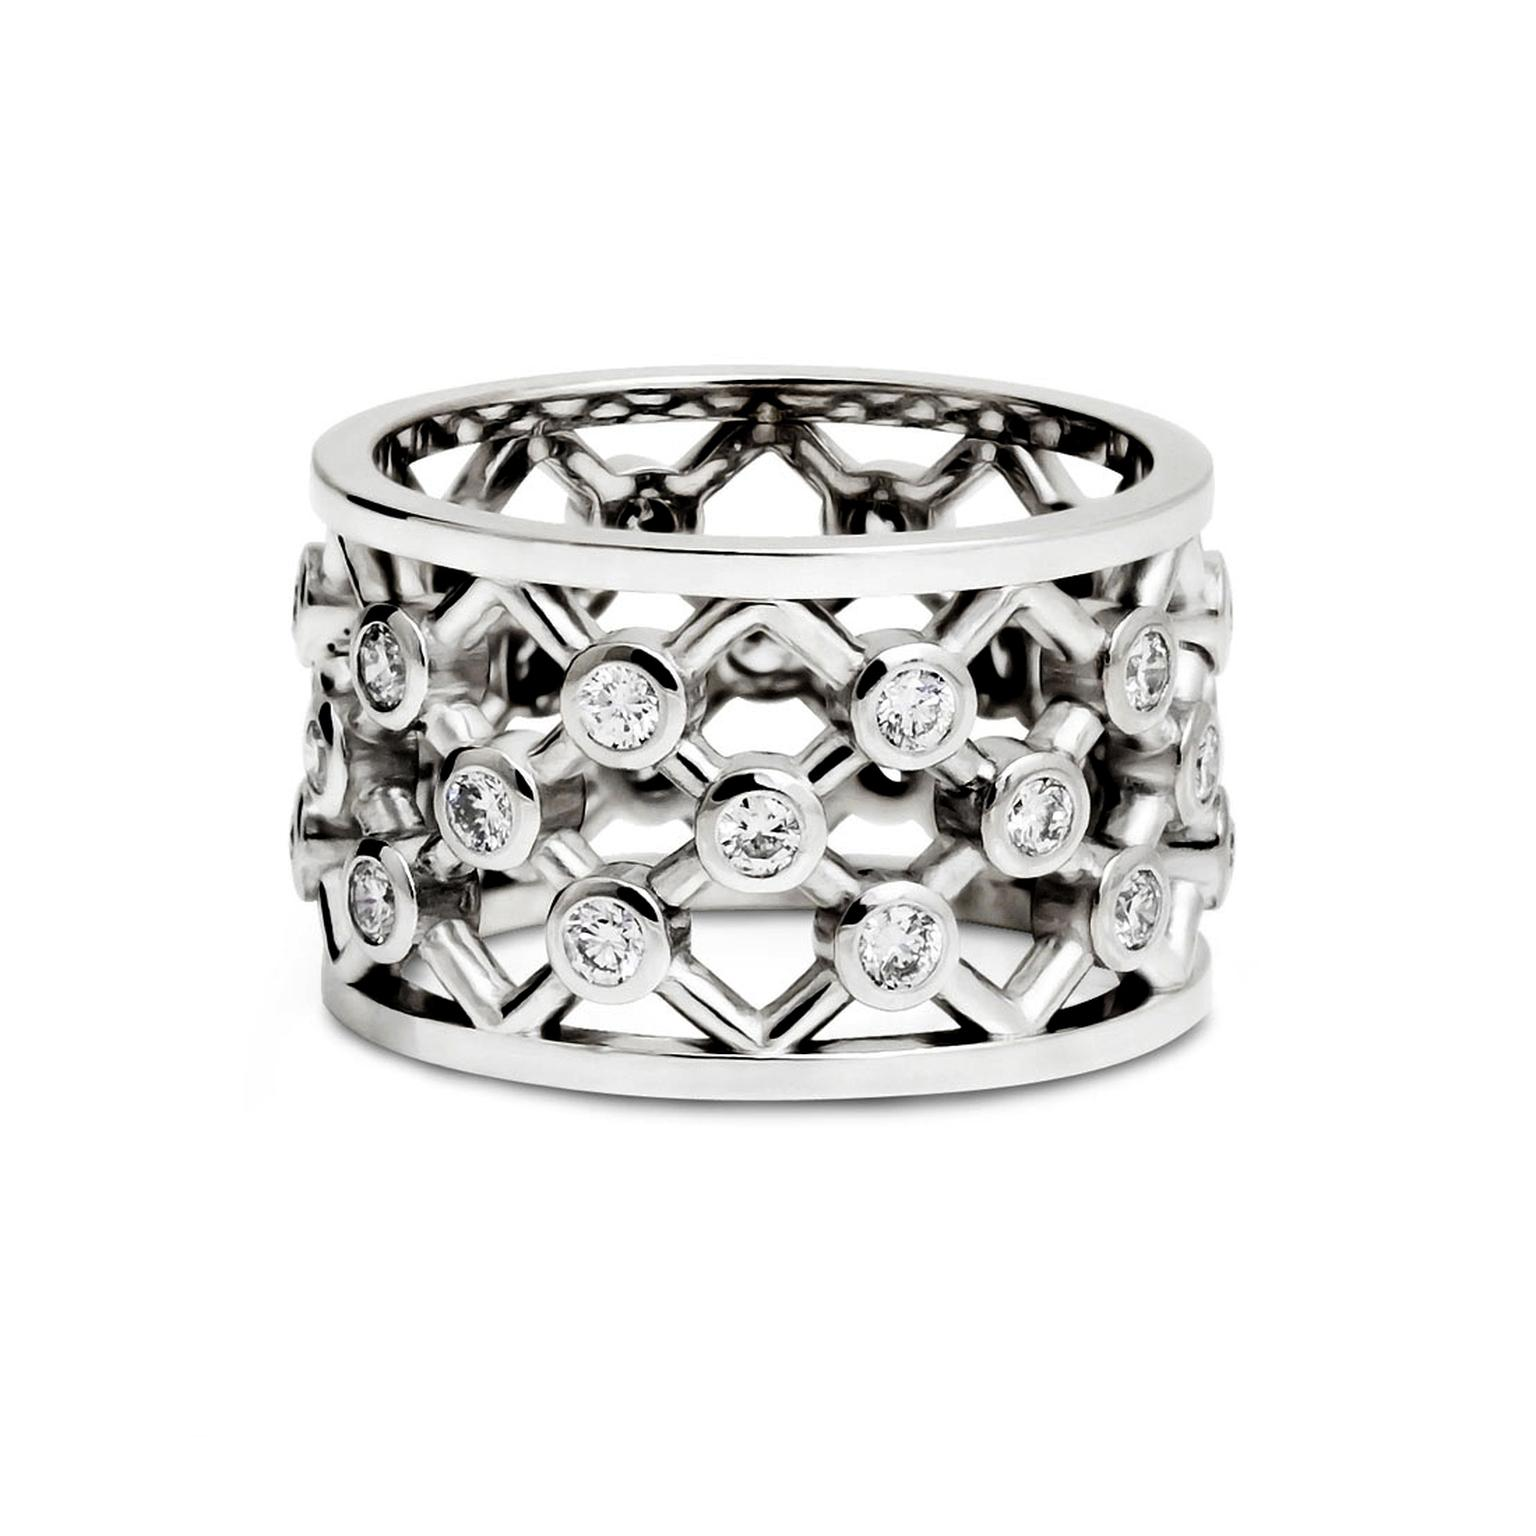 Alexander Davis Dendritic Lattice diamond ring